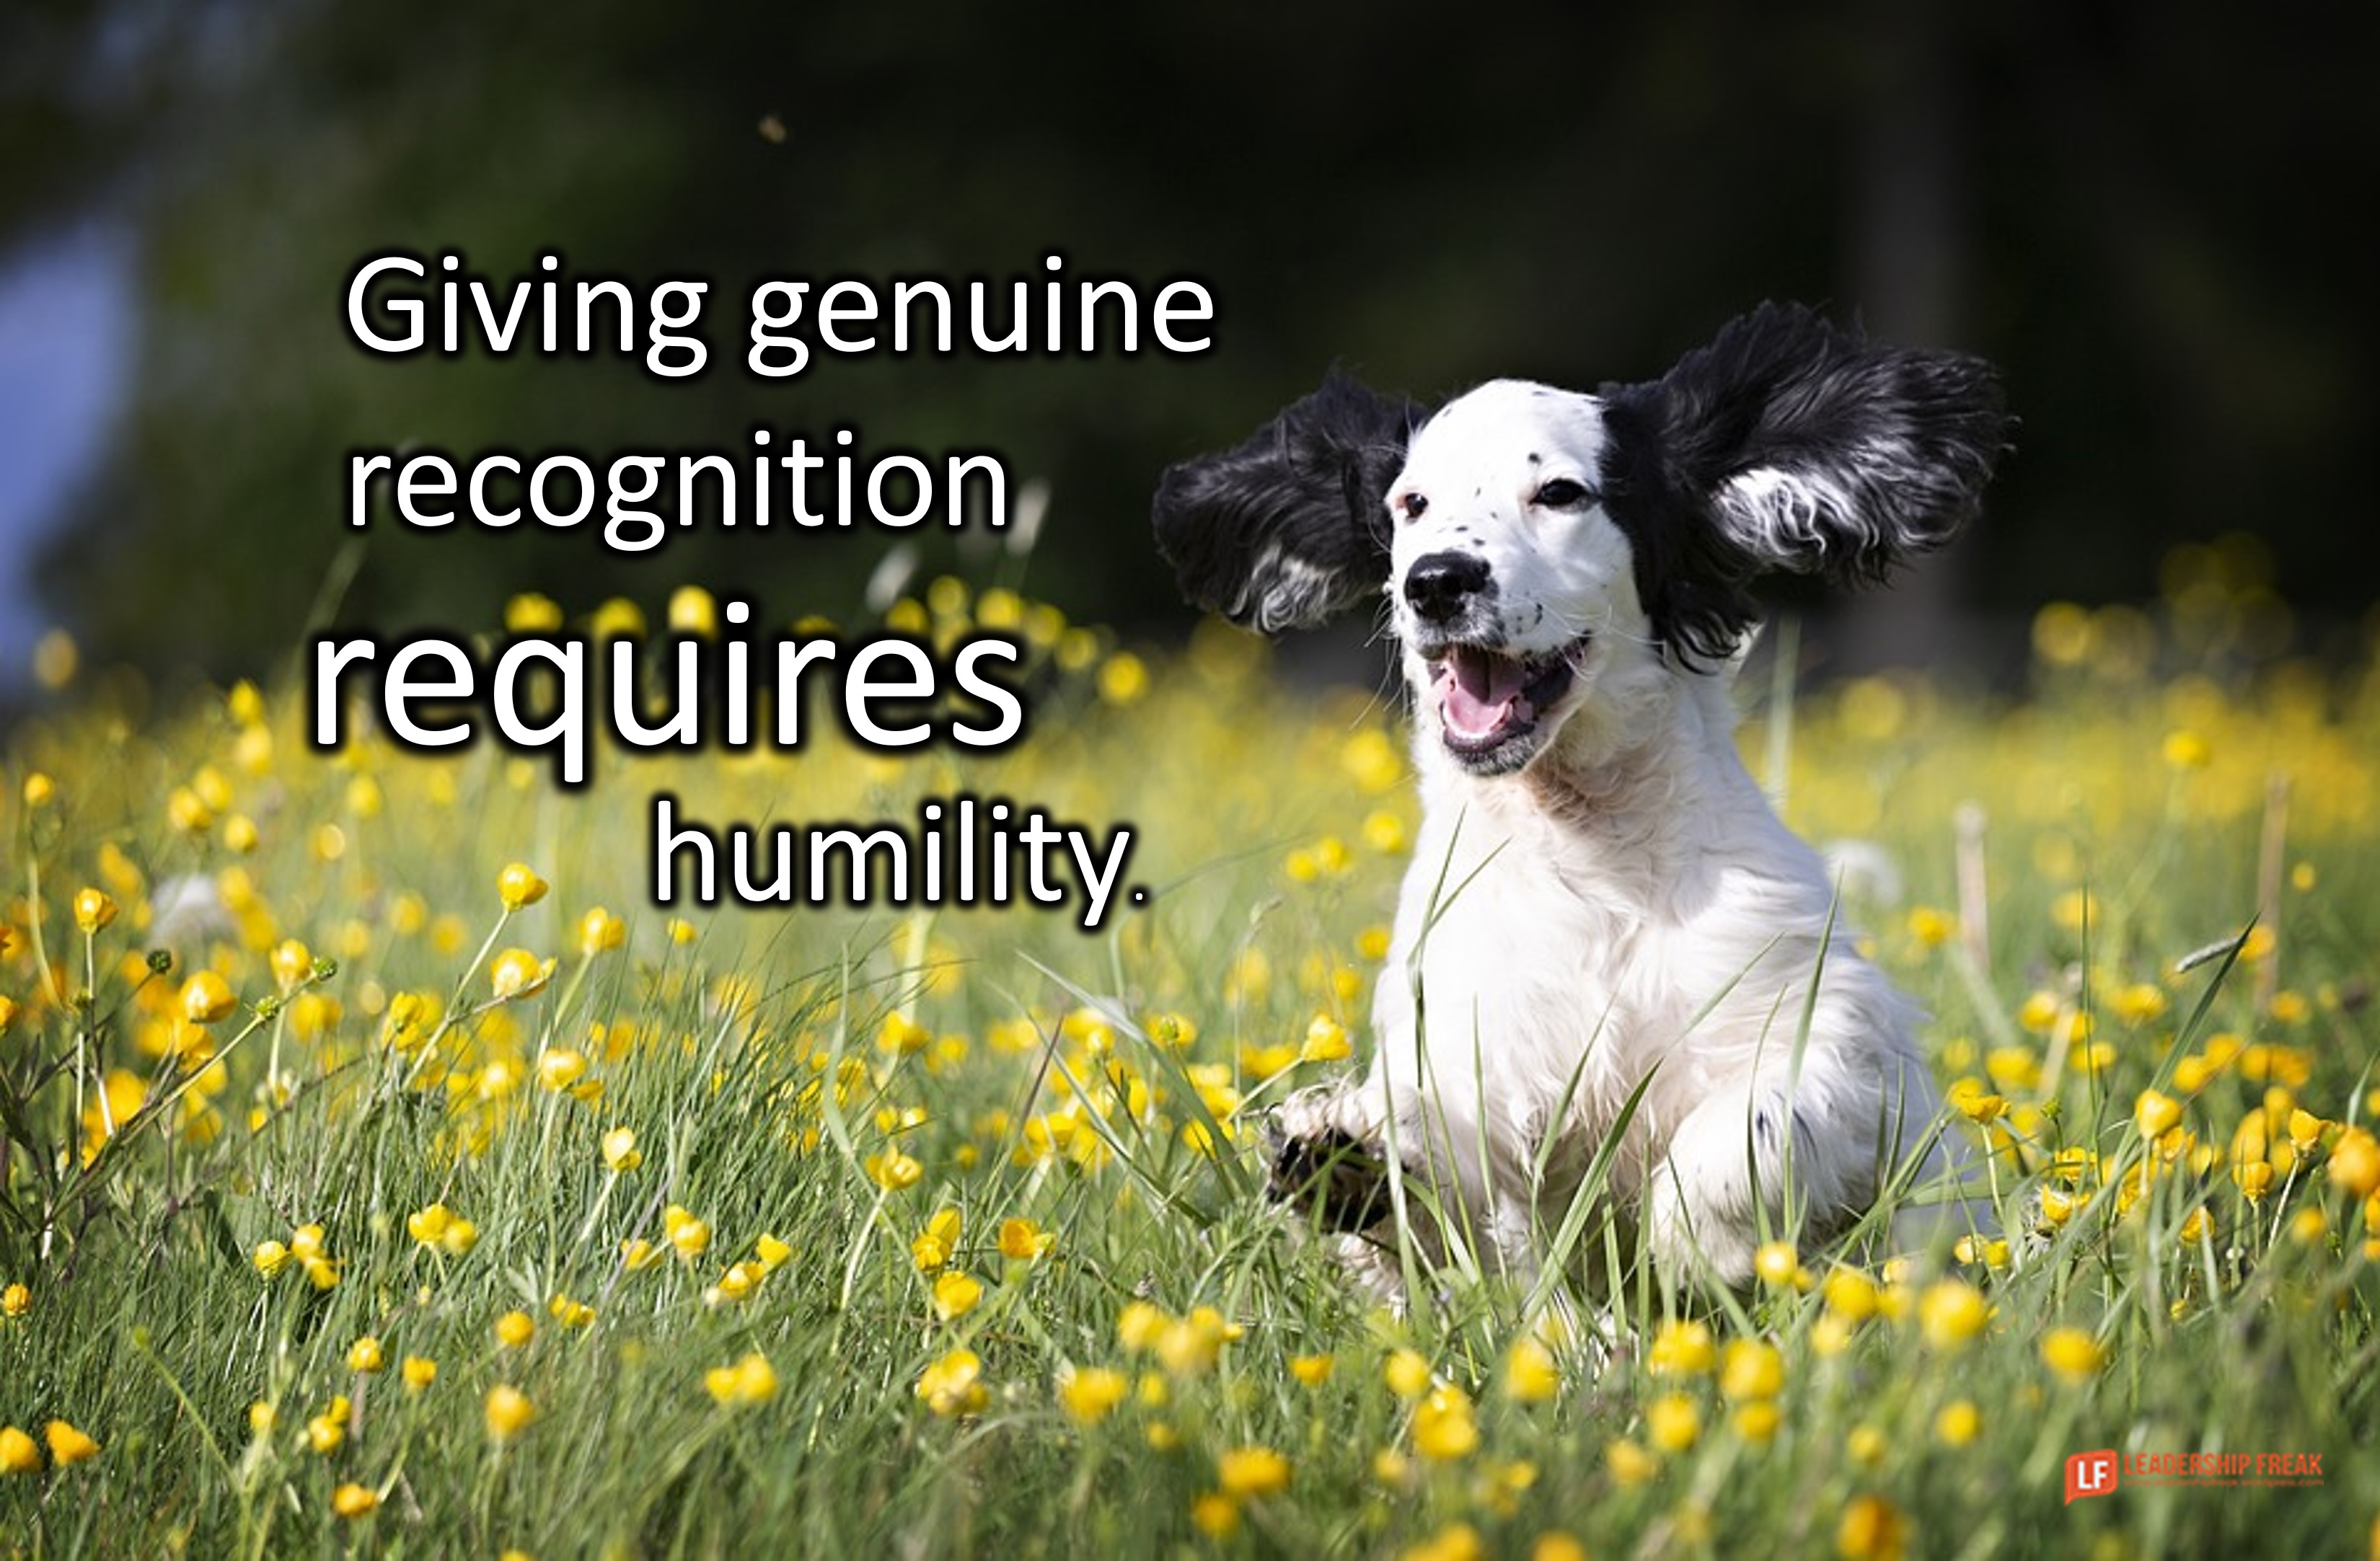 Happy dog.  Giving genuine recognition requires humility.